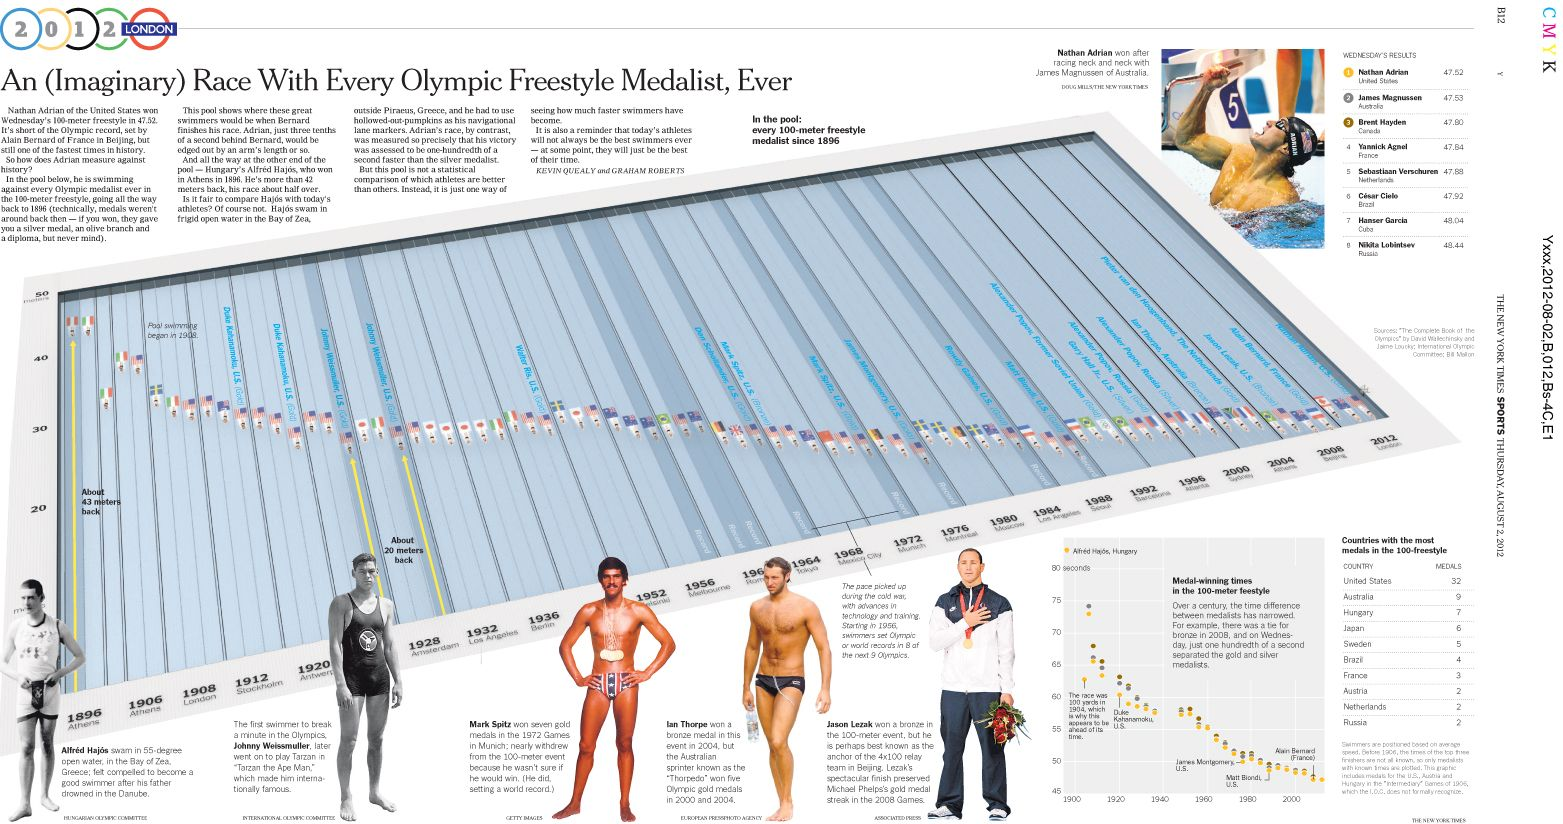 Very Cool Comparison Of How Much Faster Swimming Has Become Olympic History 100 Meter Swim